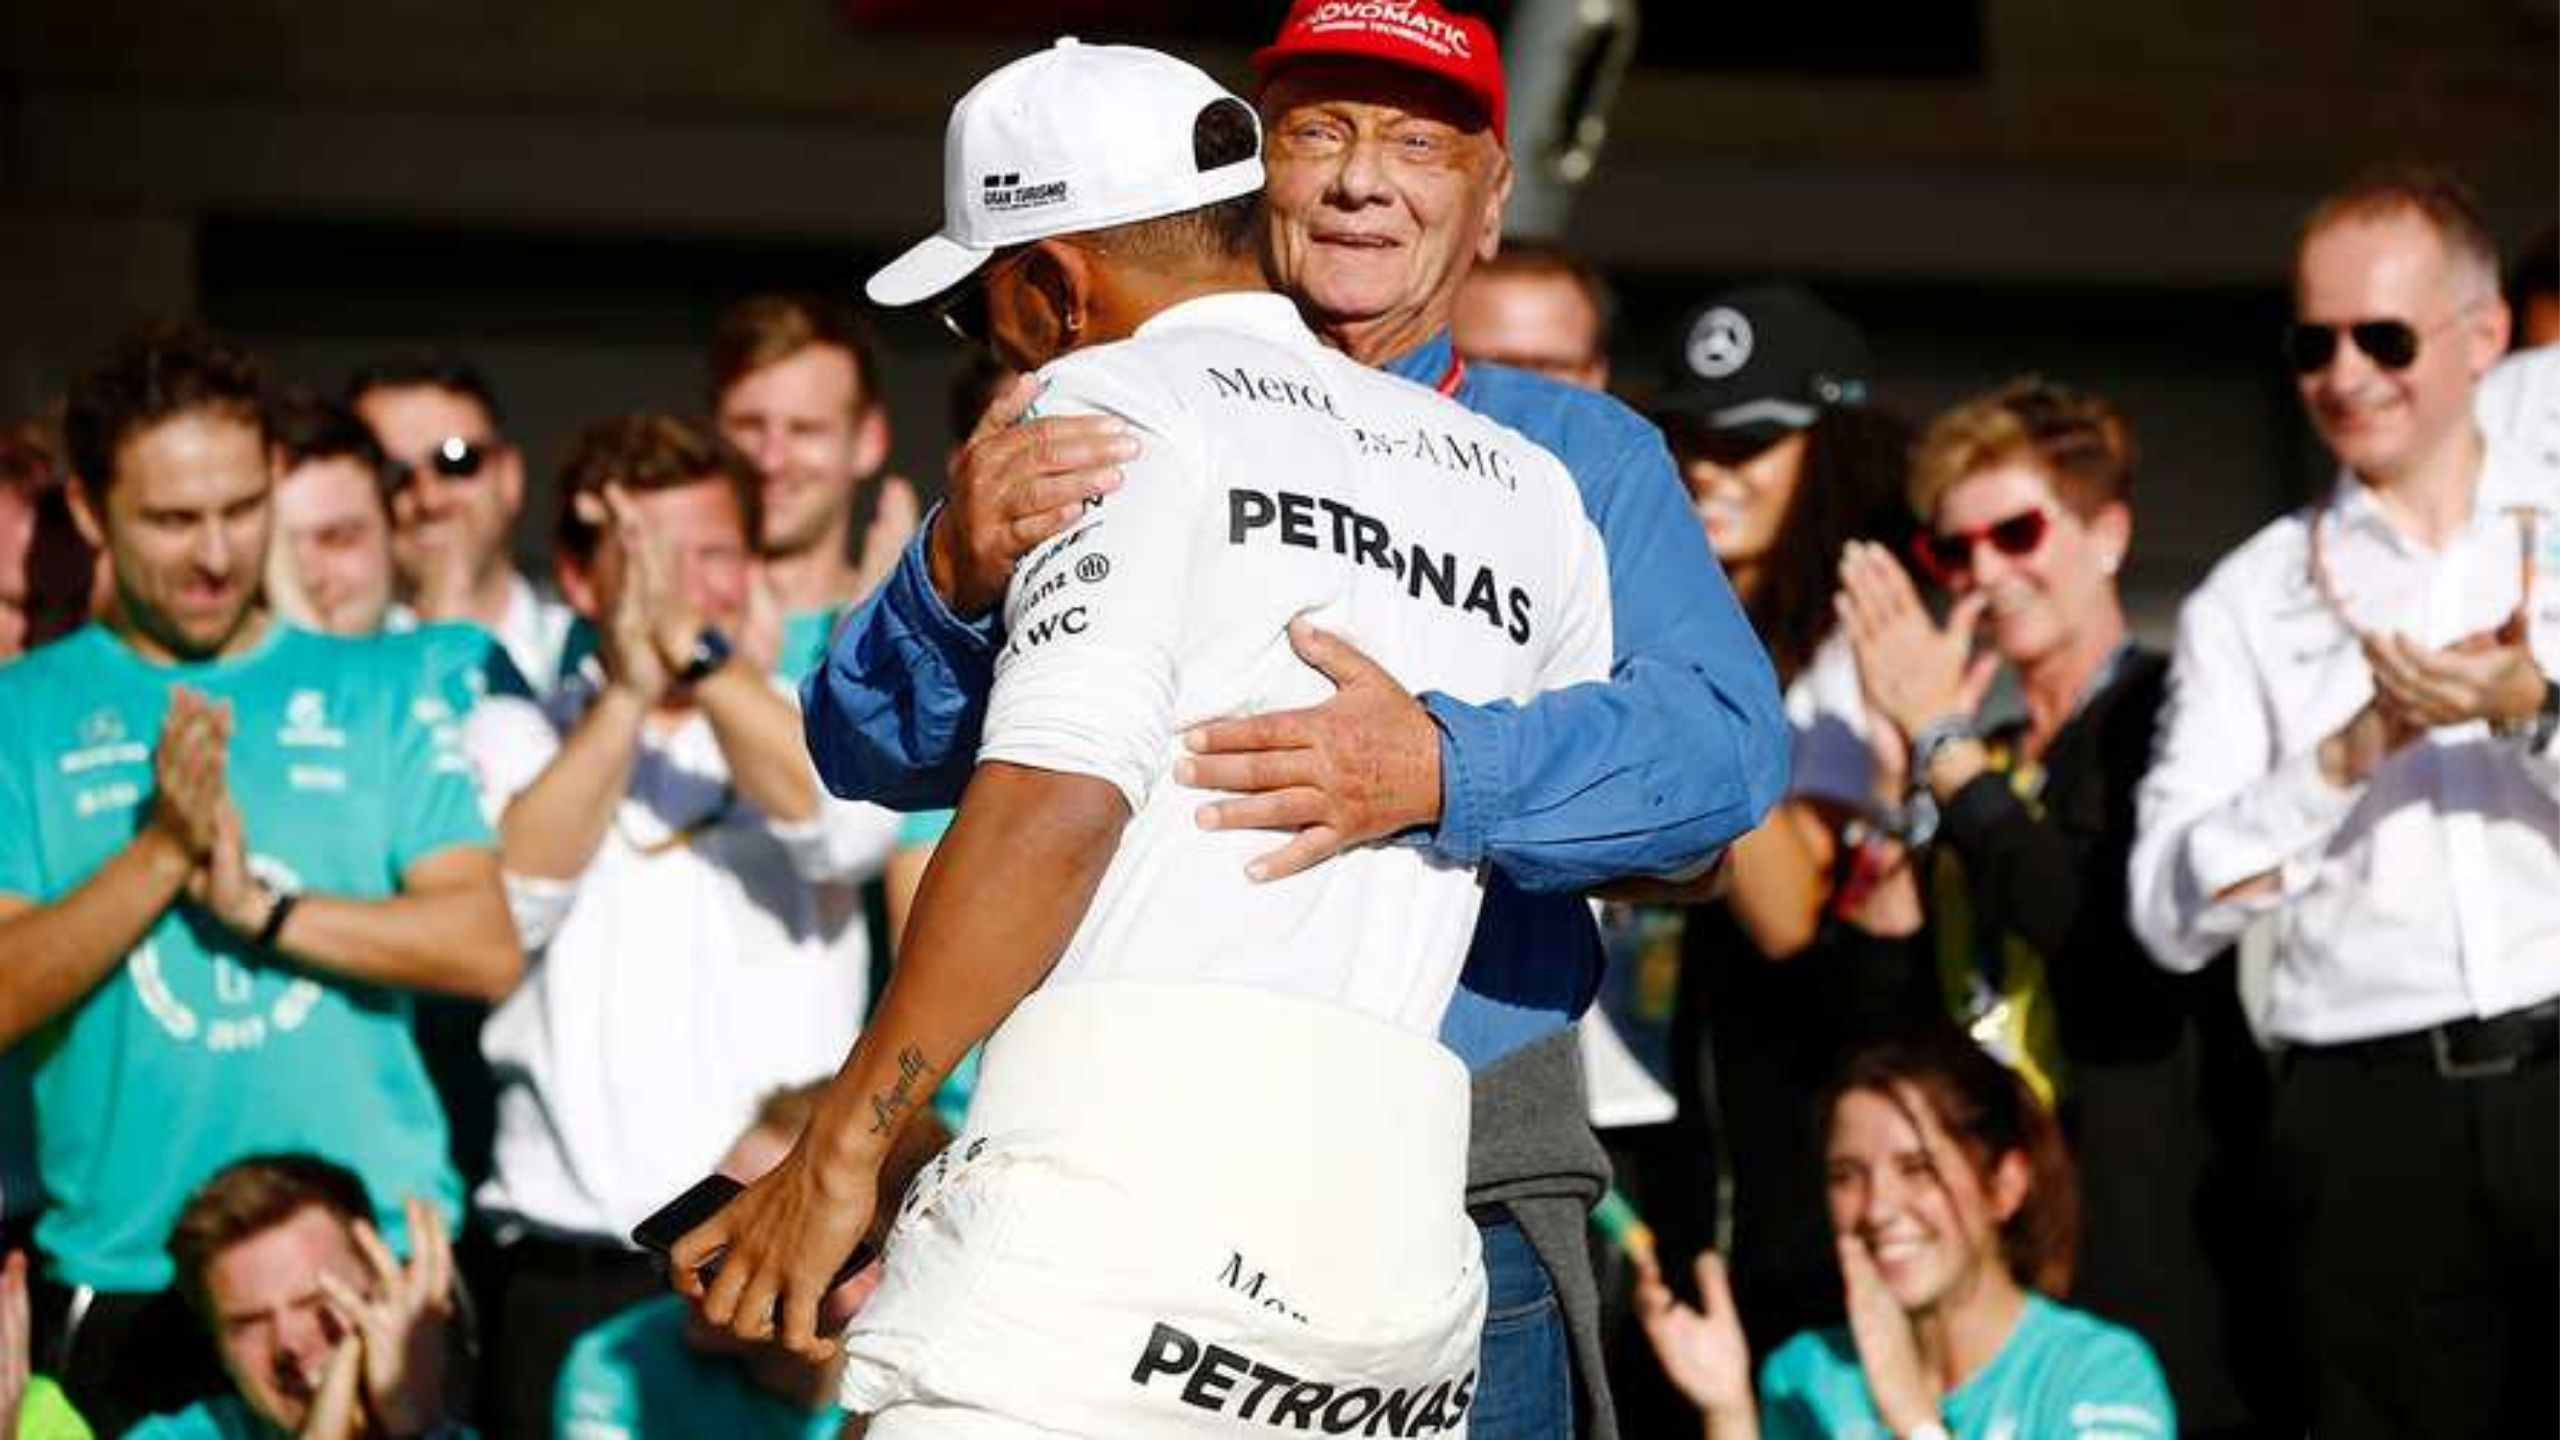 Lewis Hamilton sheds light on the role Ross Brawn and Niki Lauda played in convincing him to join Mercedes